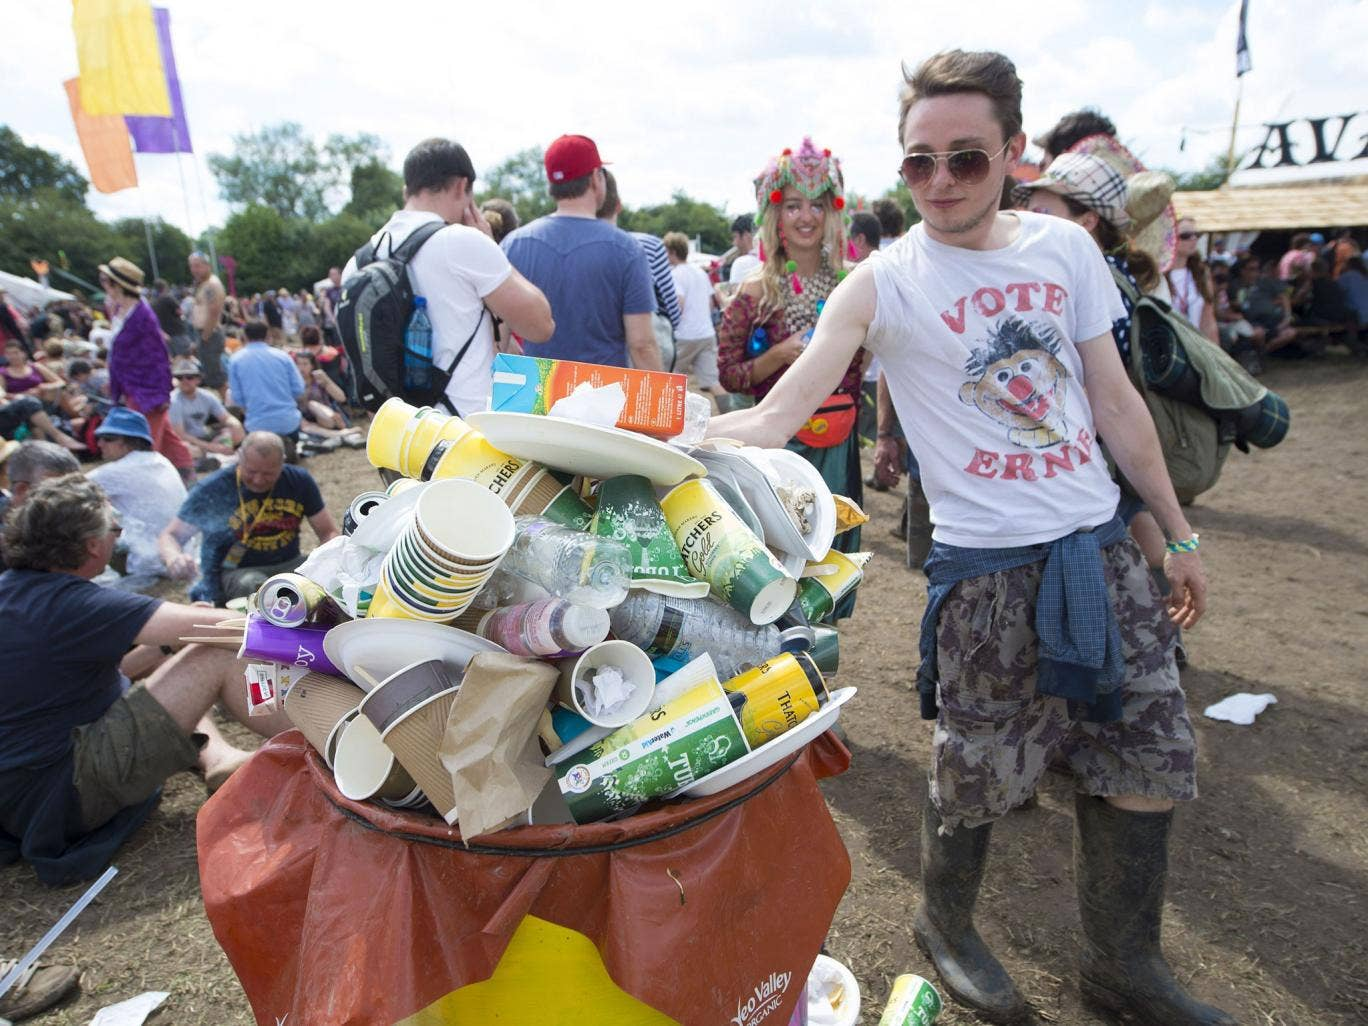 Festival goers use recycling bins at the Glastonbury Festival, at Worthy Farm in Somerset